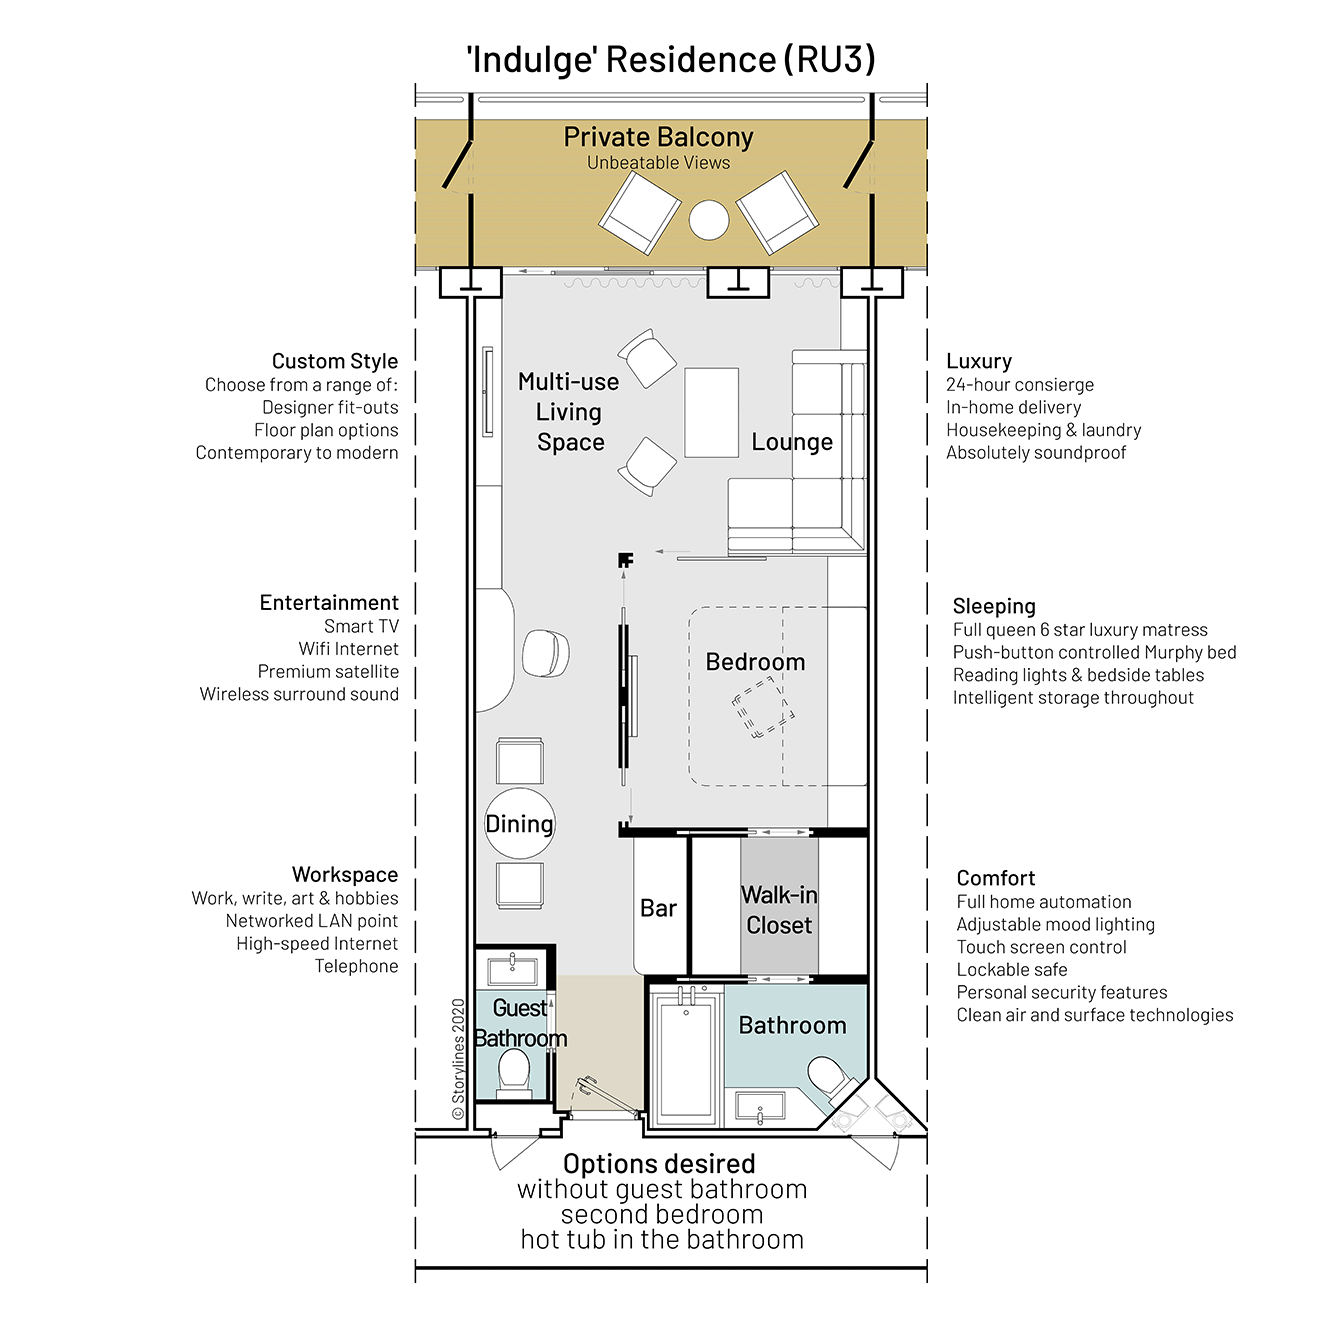 Floor plan of condo on a ship showing the layout of the furniture, rooms and balcony